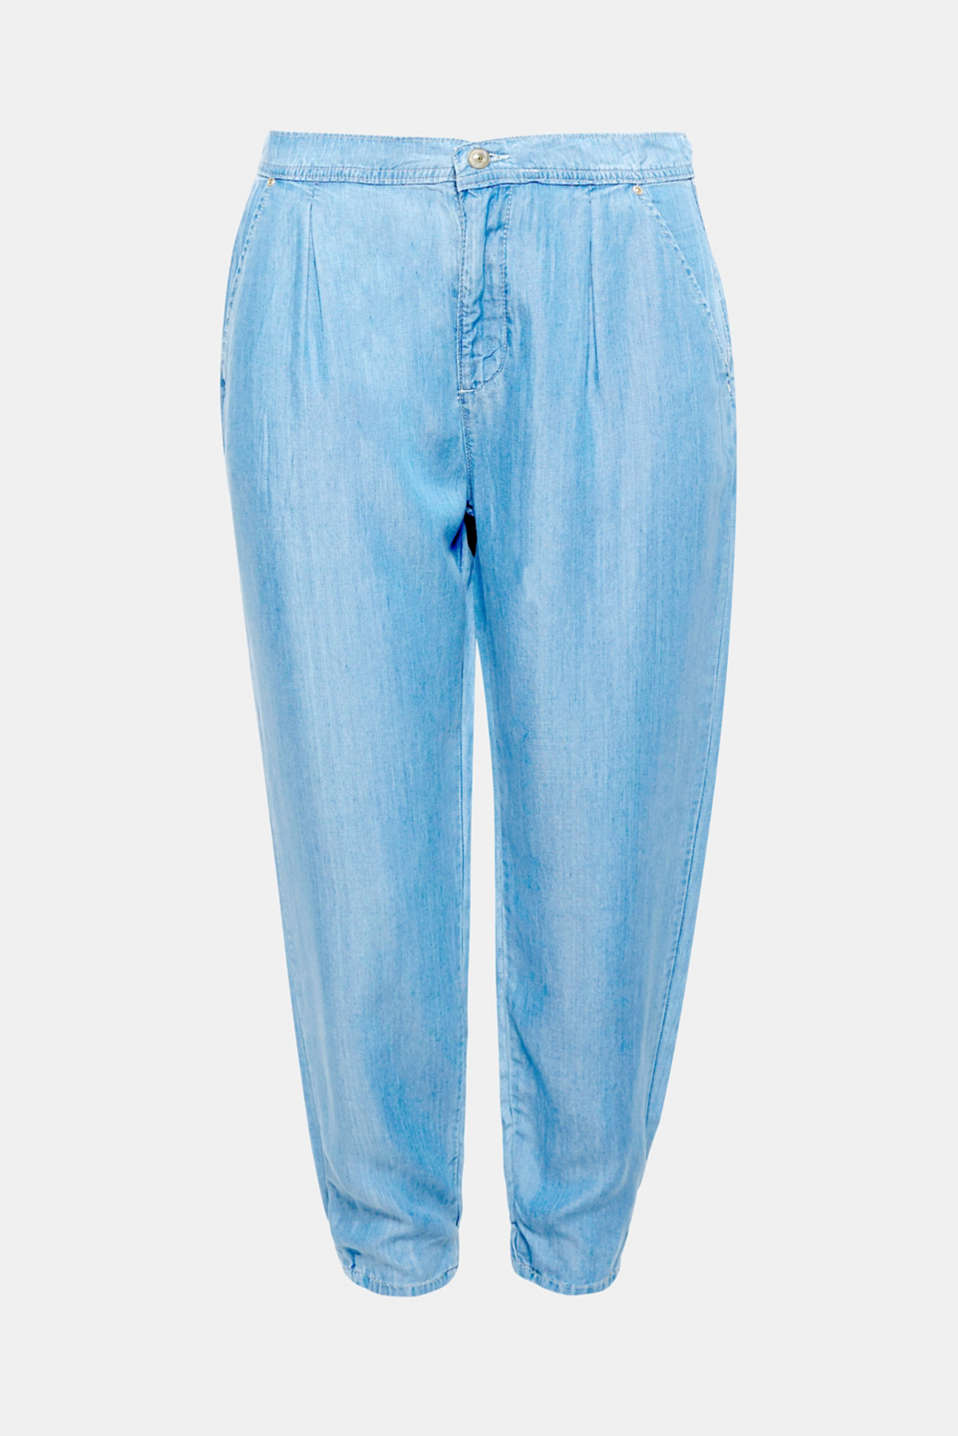 The extra lightweight lyocell fabric and relaxed tracksuit fit make these trousers a fave for the summer!